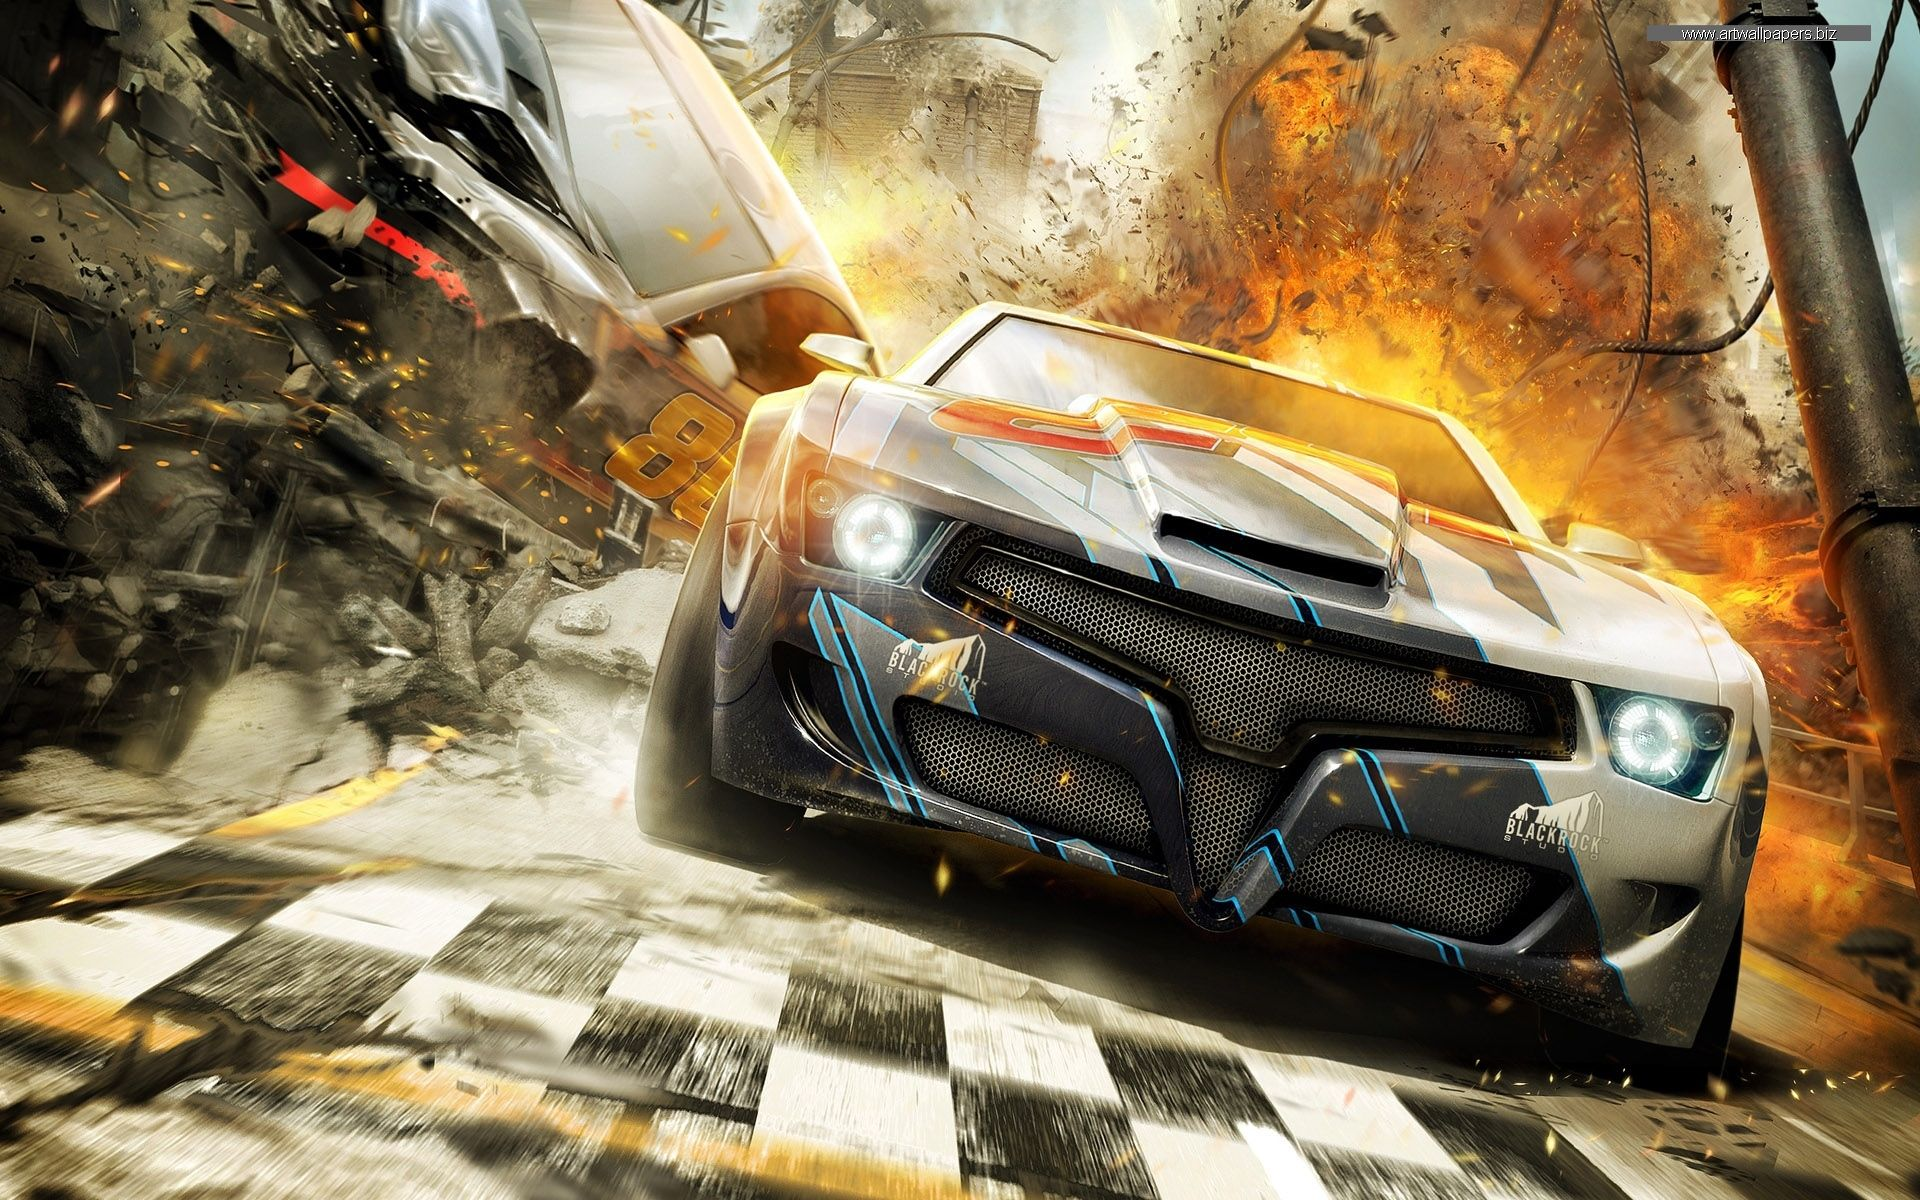 Hd Nfs Cars Wallpapers Full Hd 1080p Games Wallpapers Desktop Backgrounds Hd